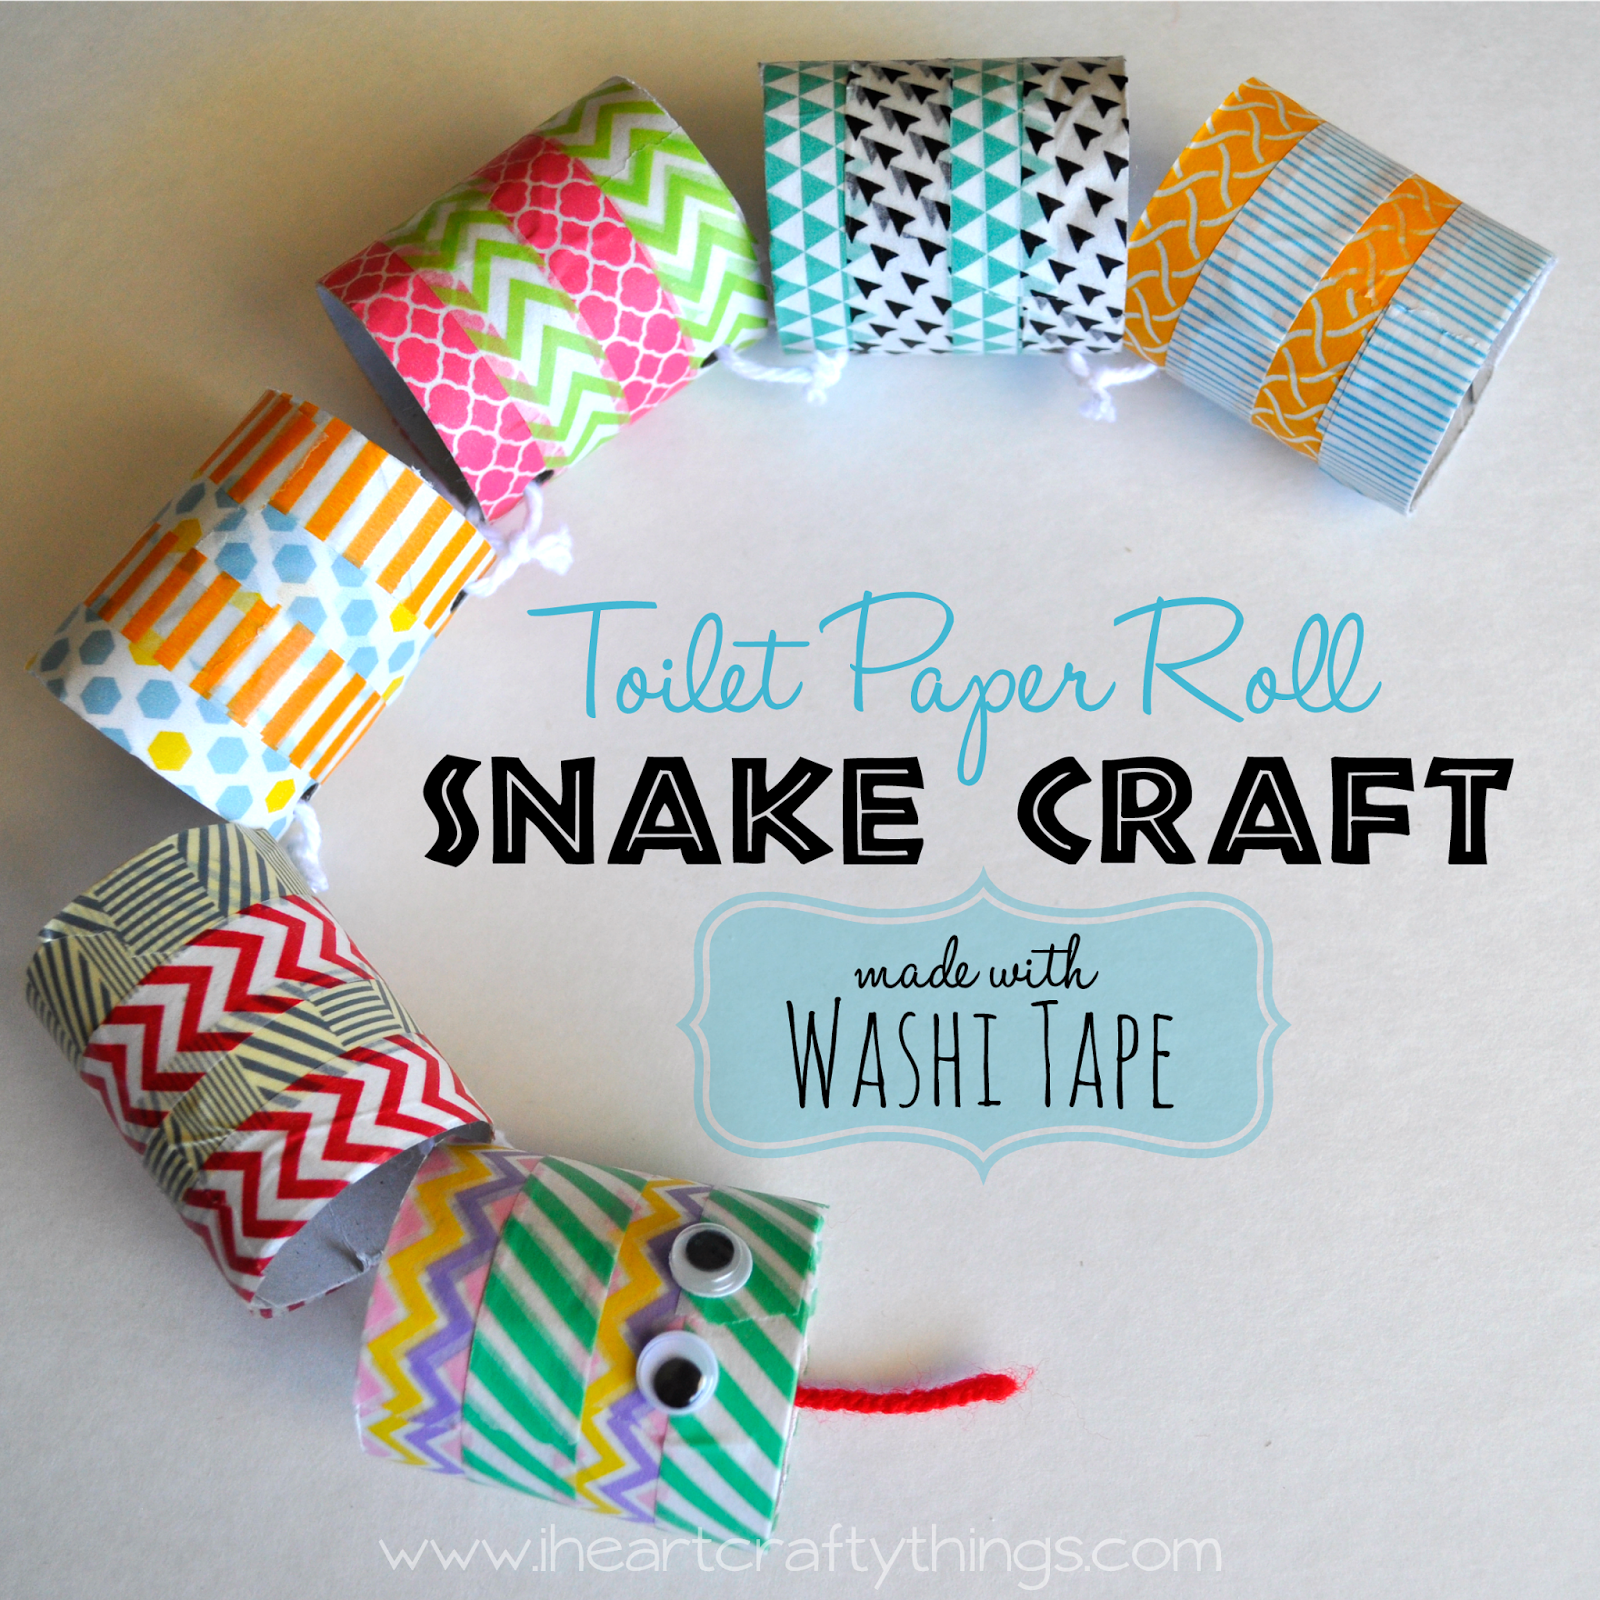 Toilet paper roll snake craft made with washi tape snake crafts toilet paper roll snake craft made with washi tape via iheartcraftythings jeuxipadfo Images